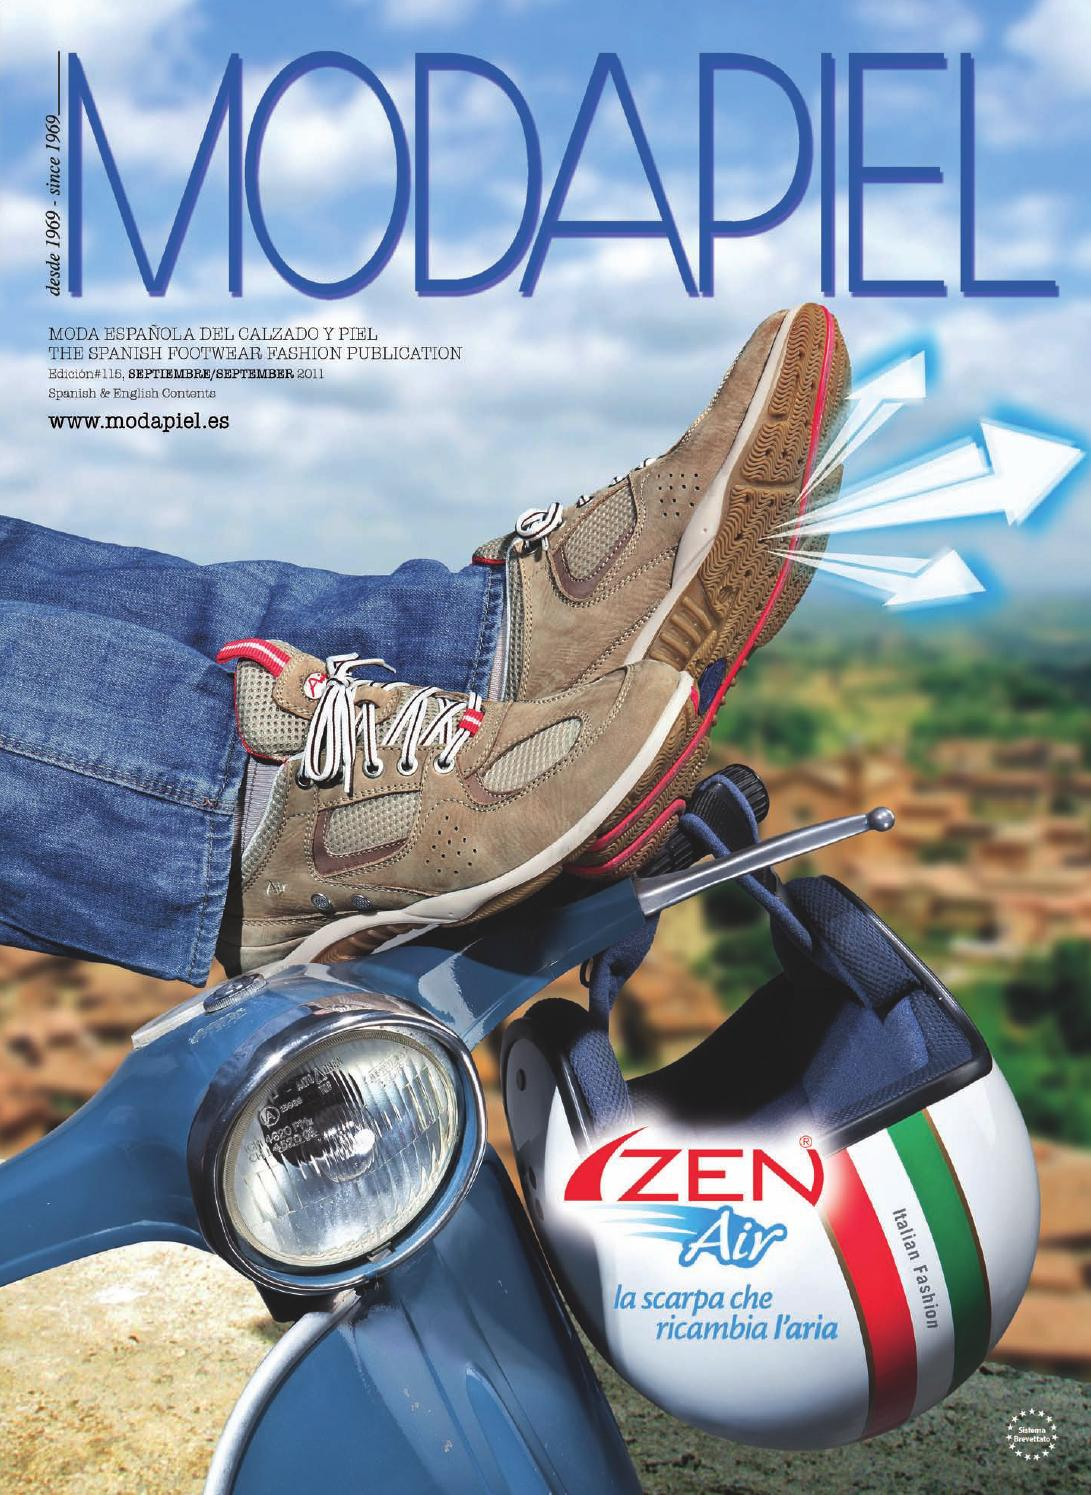 e62df1377ca Modapiel 115 Shoes and accessories magazine by Prensa Técnica S.L. - issuu